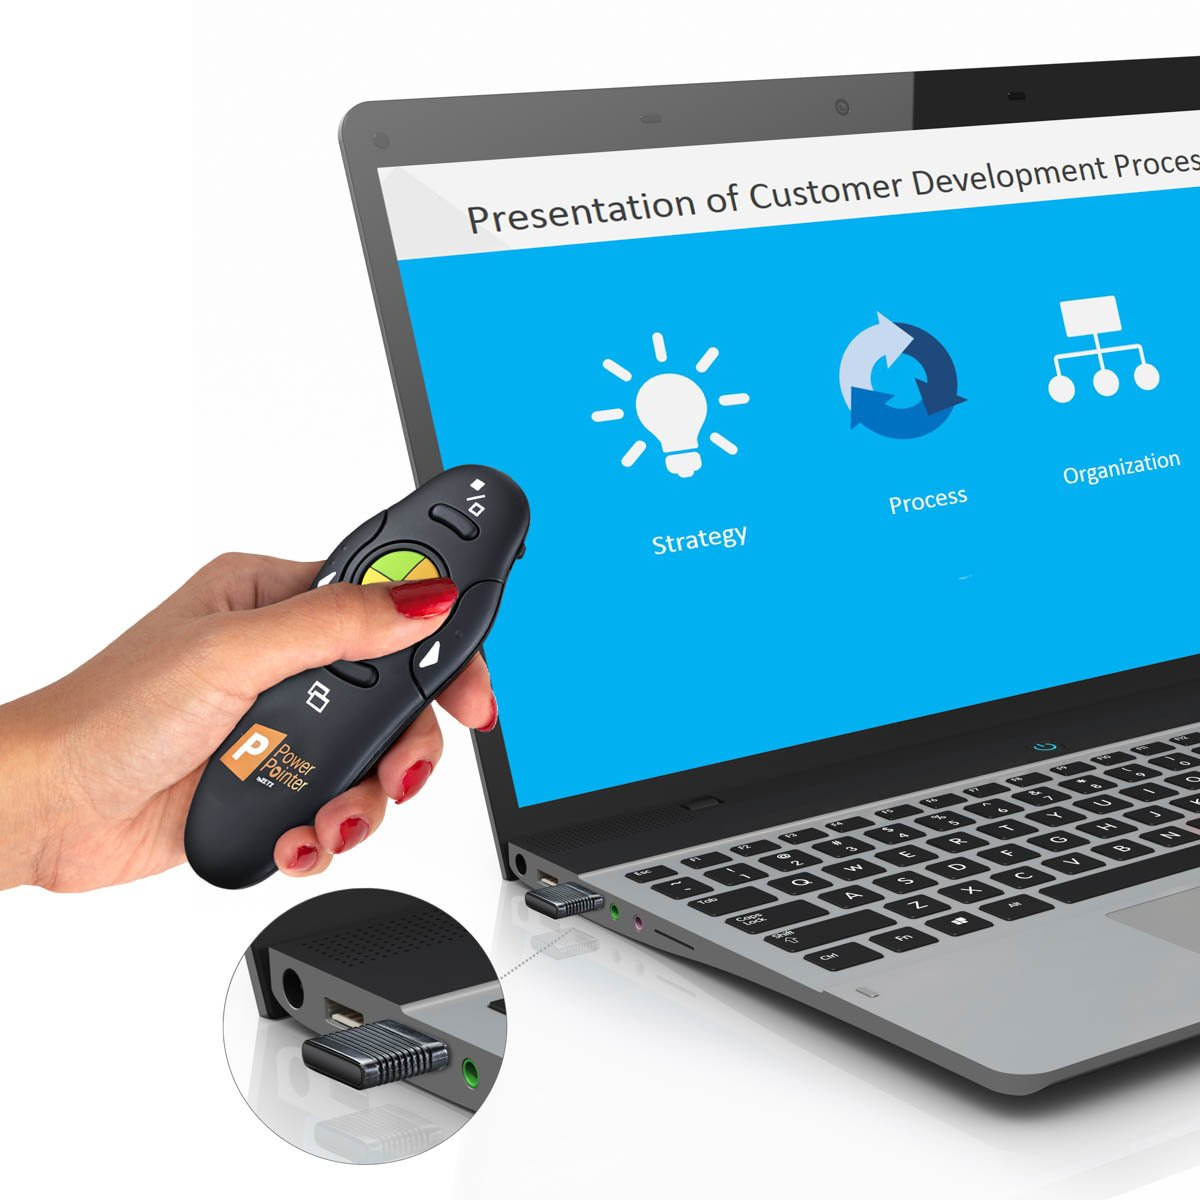 ZETZ Wireless Presenter Remote Control With USB & Laser Pointer | Powerful & Ergonomic PPT Clicker Easy To Use | For Microsoft Power Point Presentations, Excel & Interaction With Crowd by Zetz (Image #4)